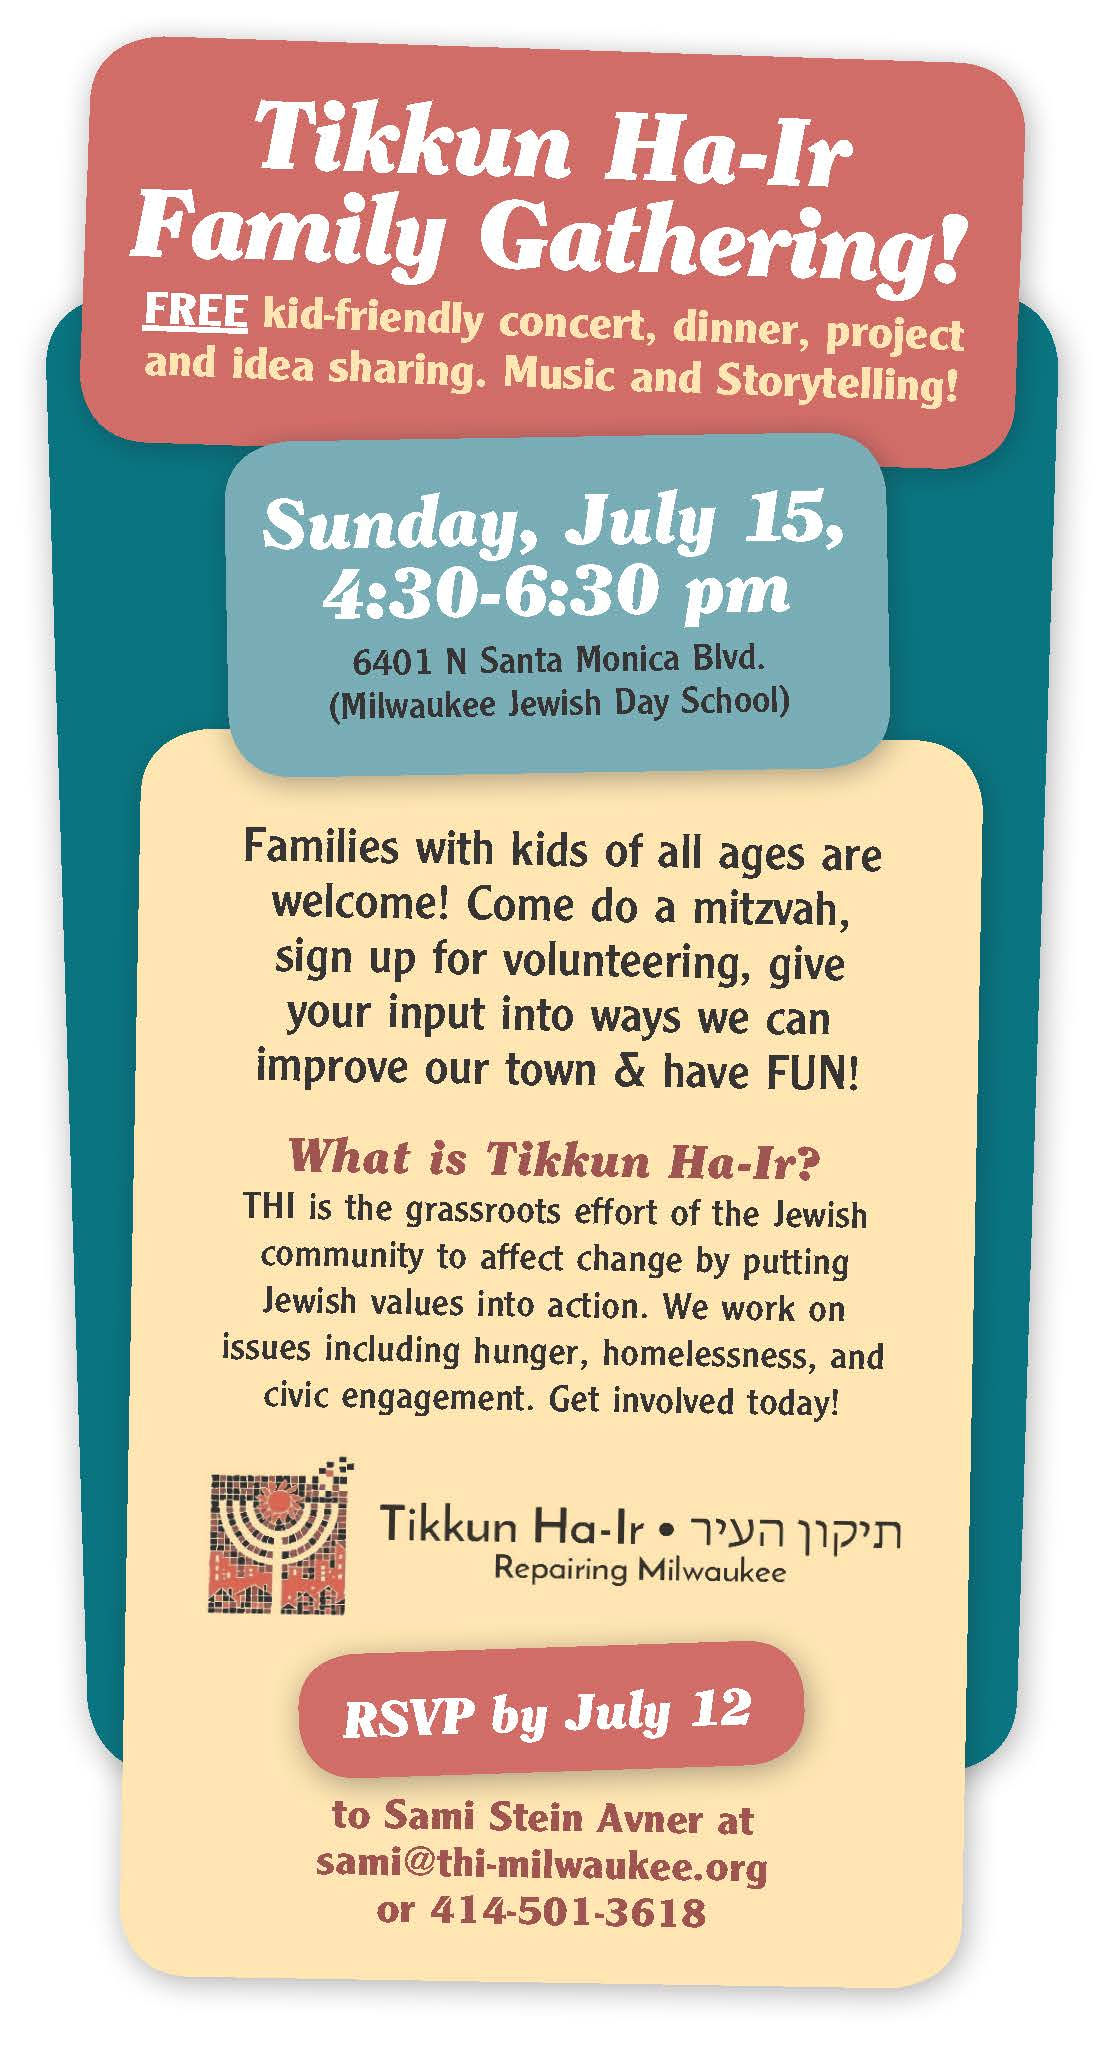 Tikkun Ha Ir_Family Gathering€2x7.25€bw€7-18_r3